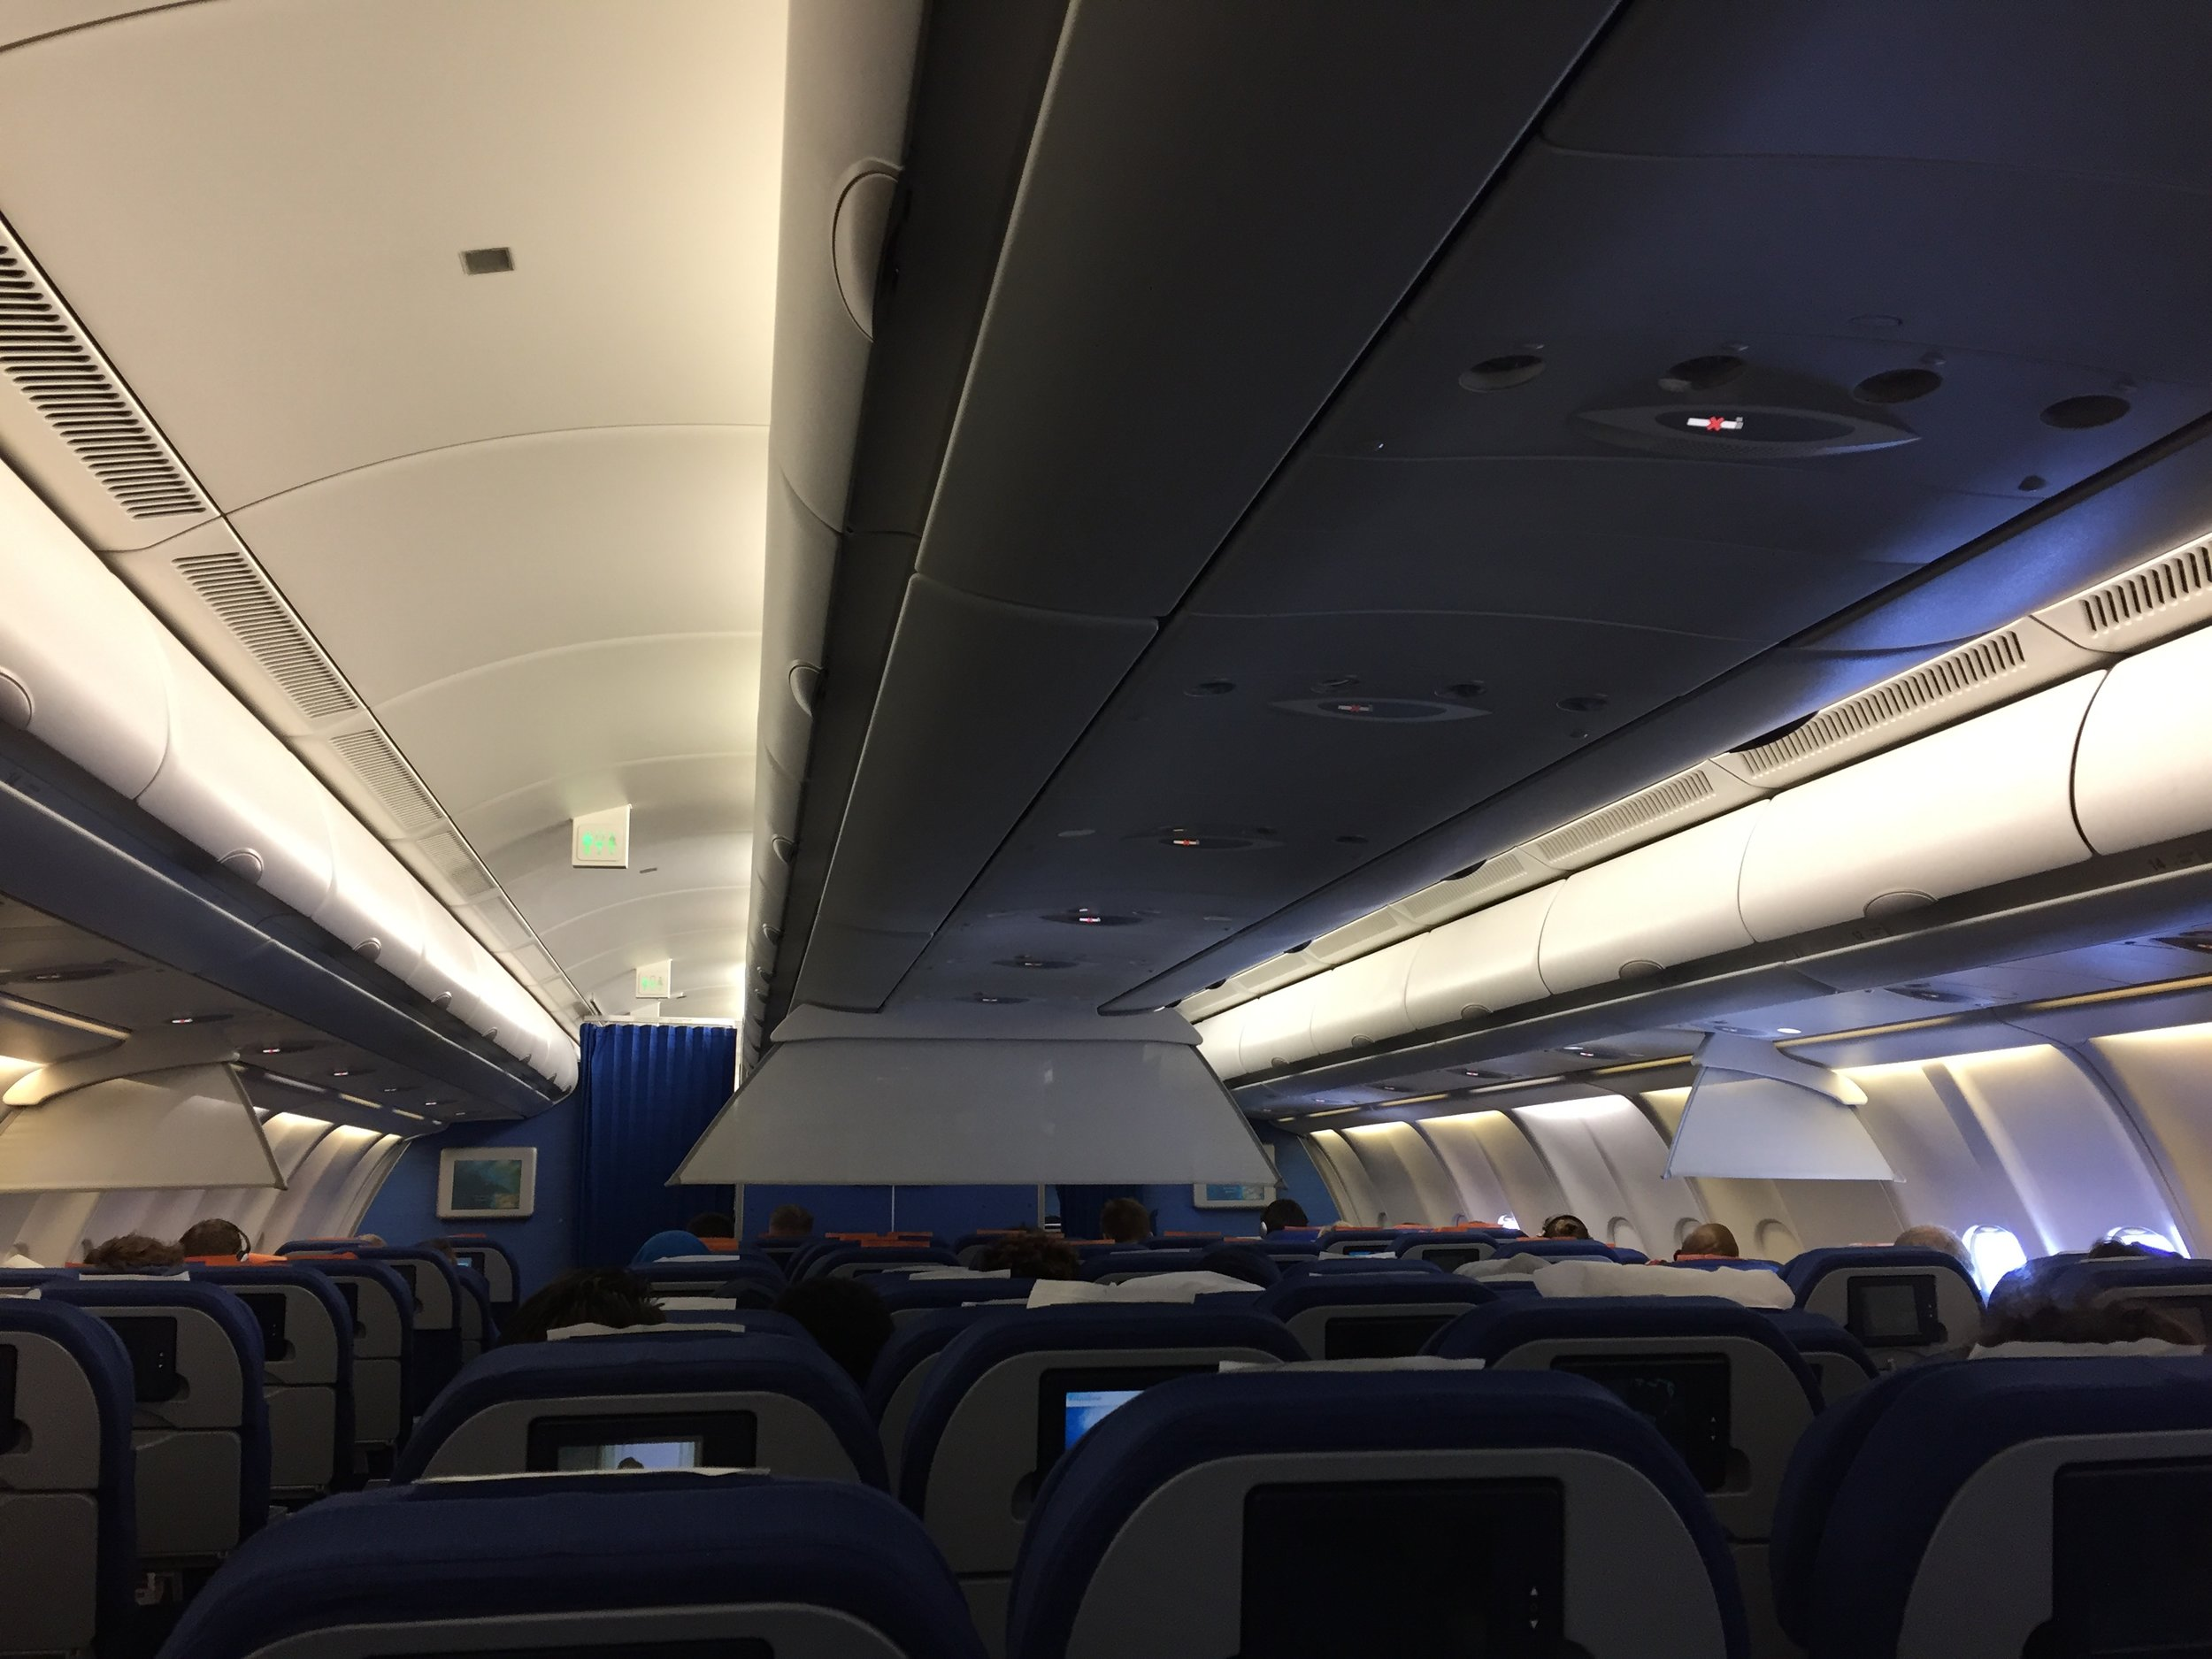 A general view of the A330-200 economy class cabin